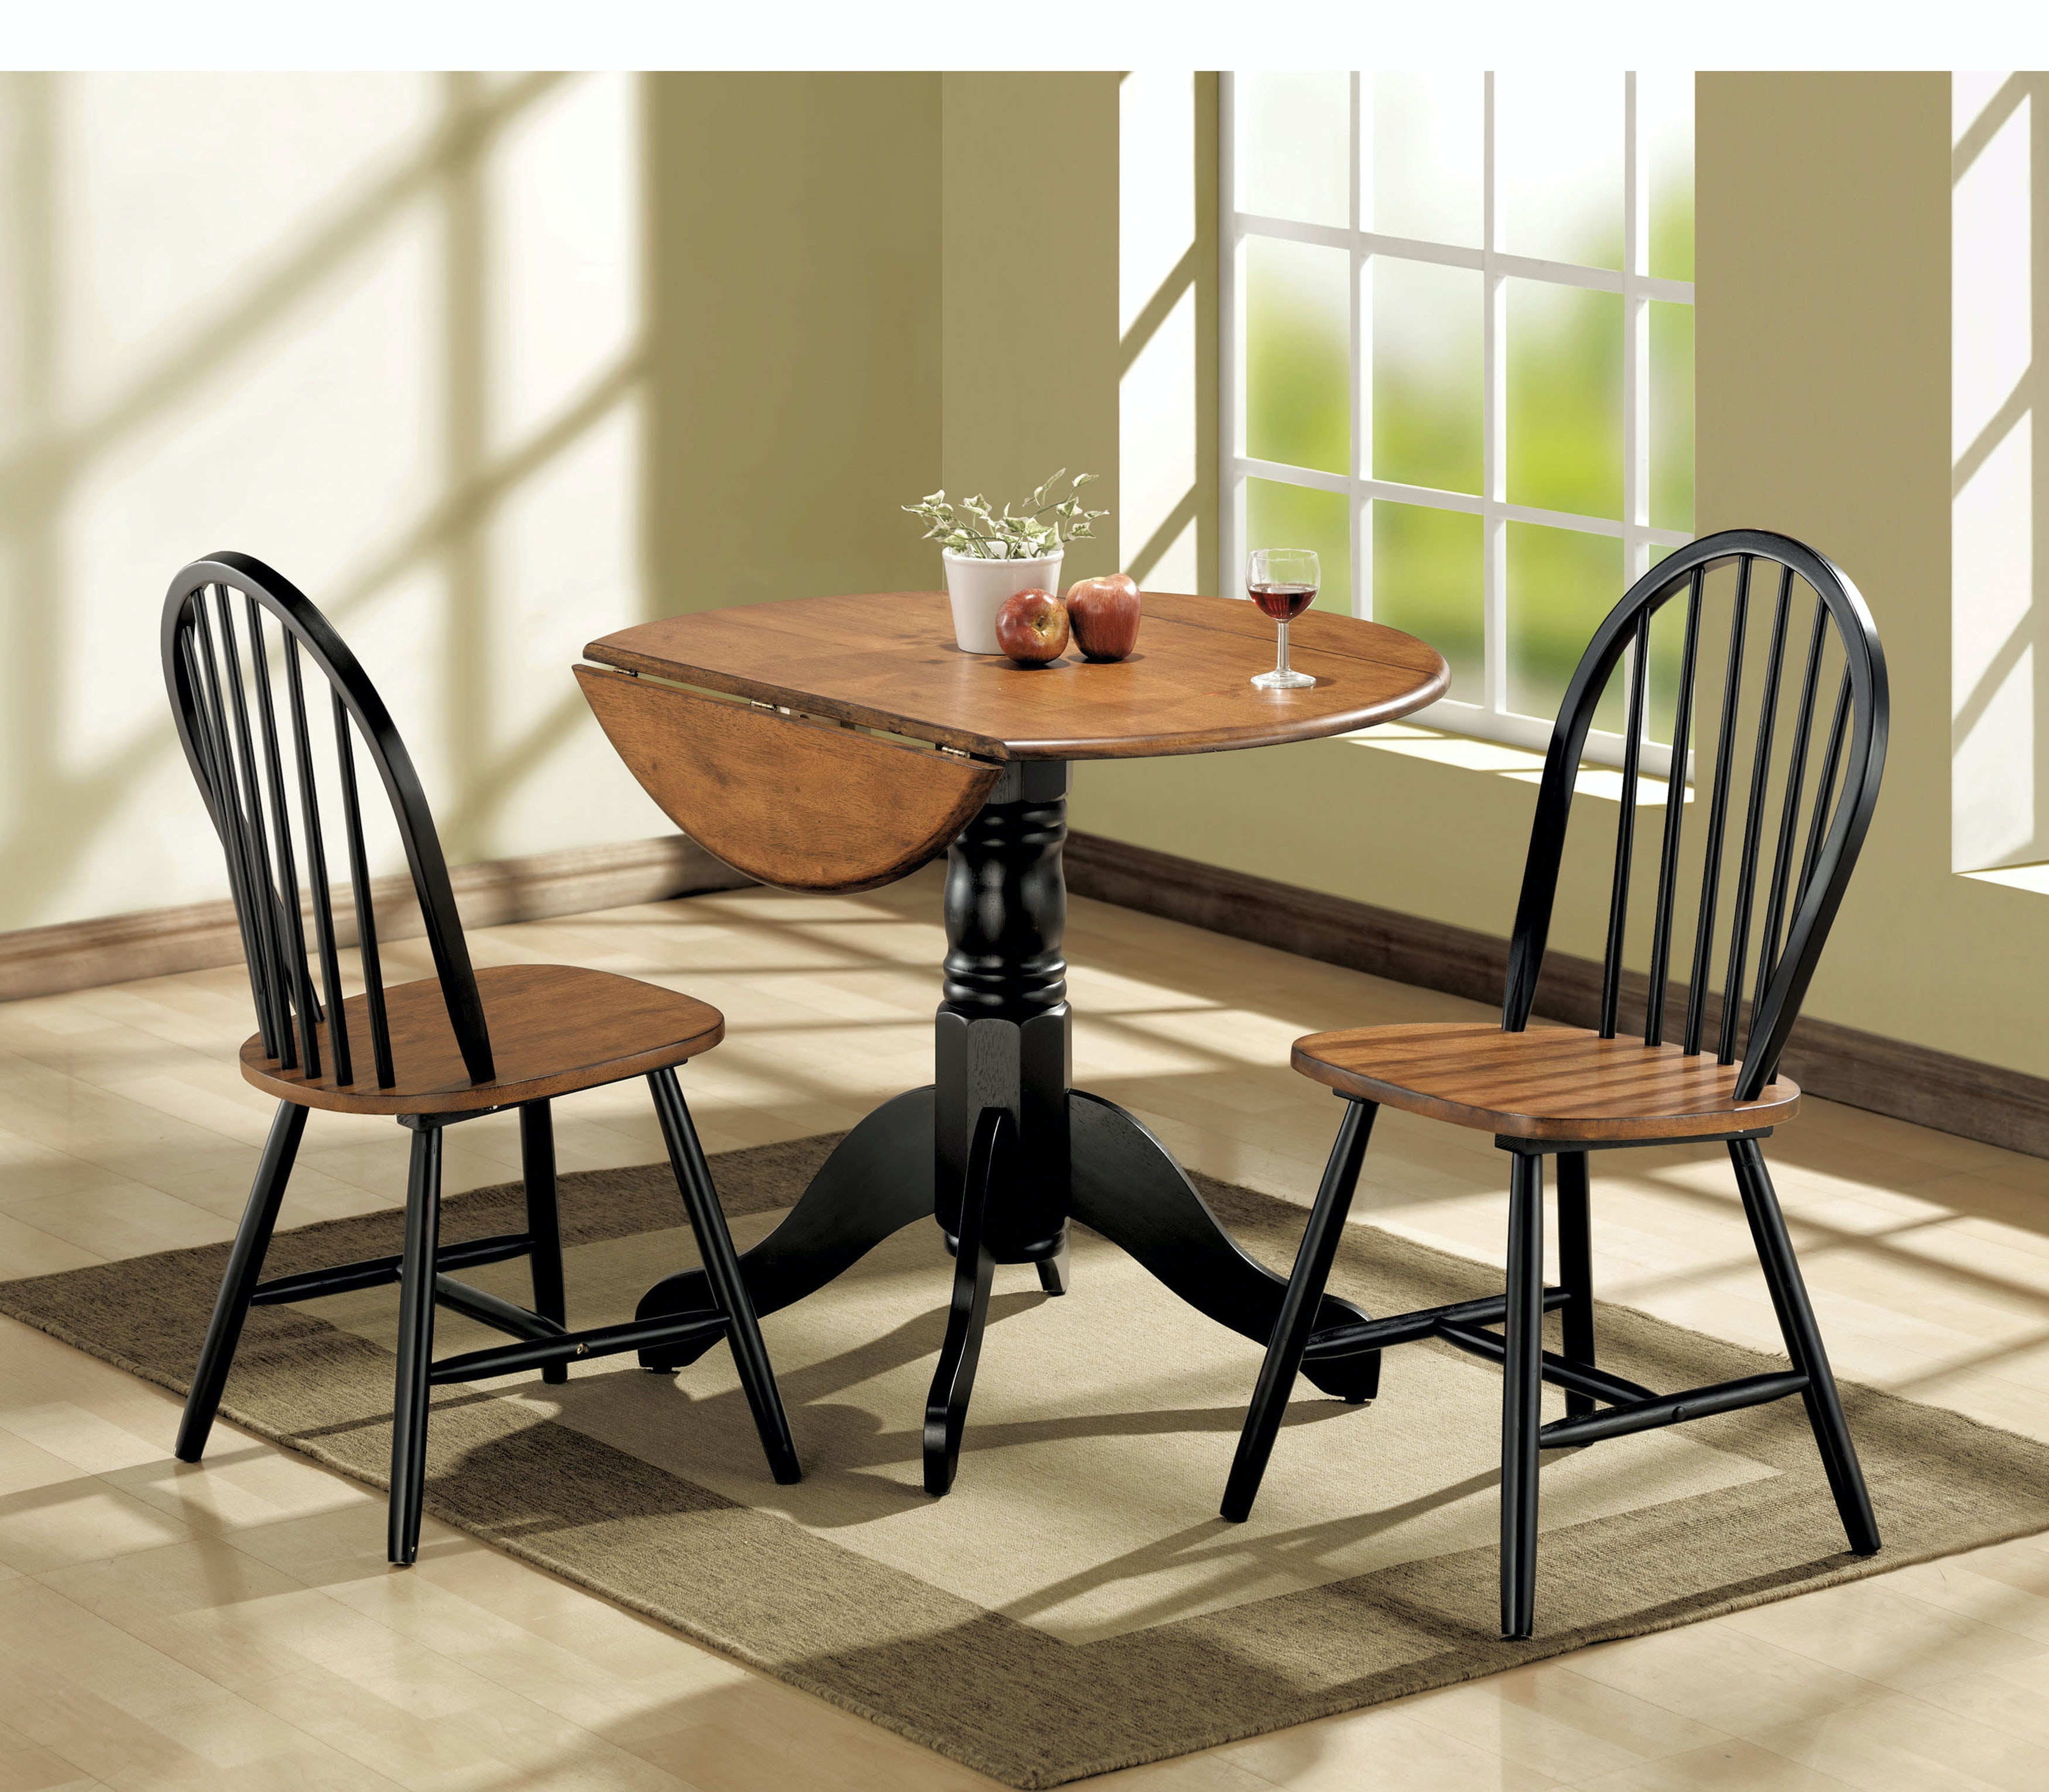 00878. Mason 3 Piece Dining Set